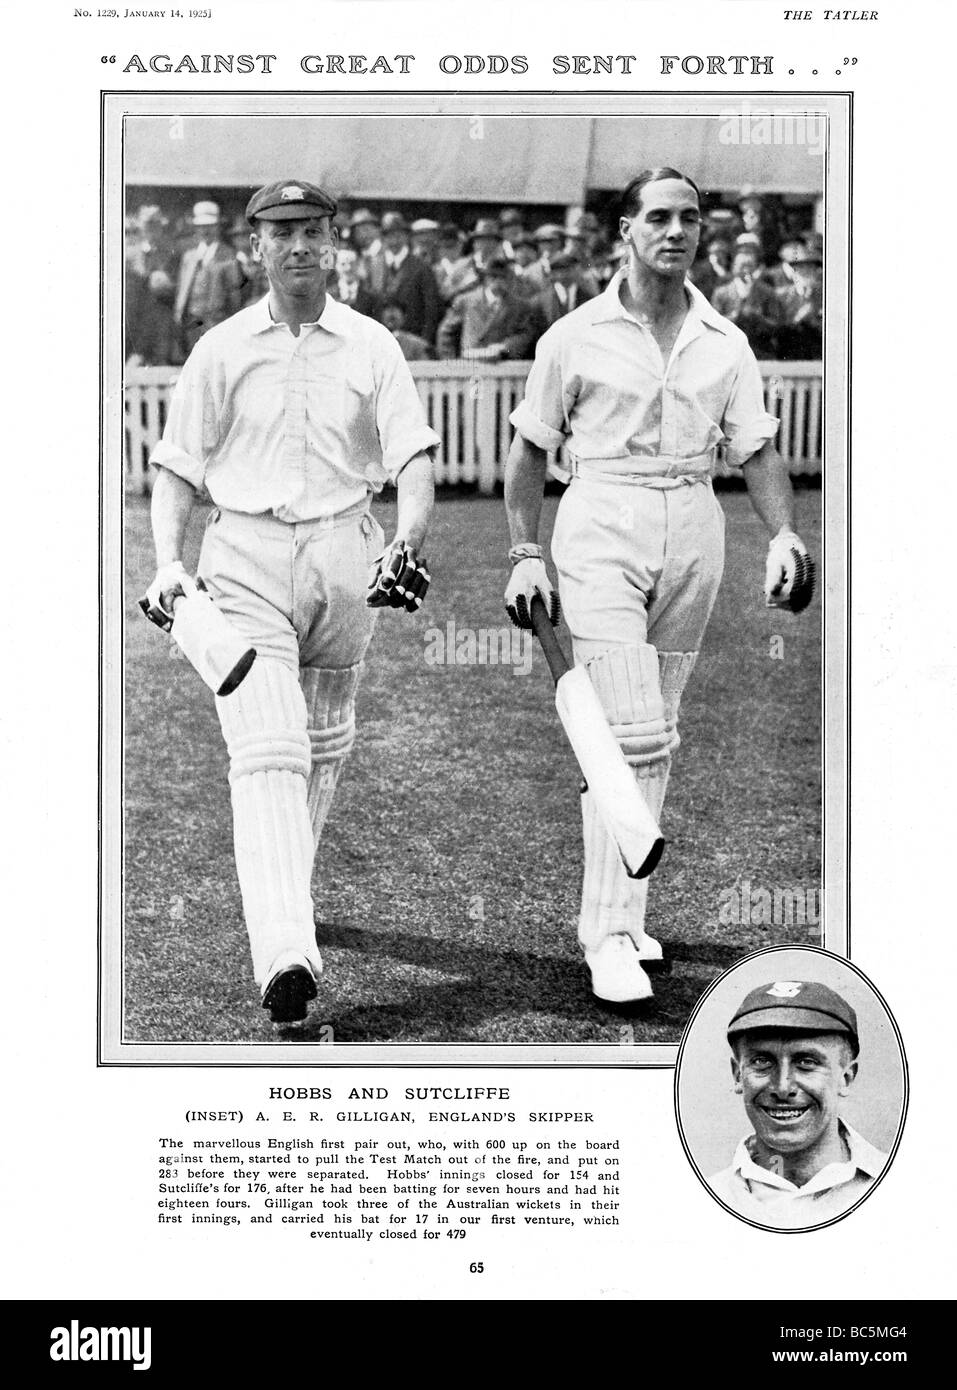 Hobbs and Sutcliff 1925 photo of the great England opening partnership striding out to reply to the 600 of Australia - Stock Image